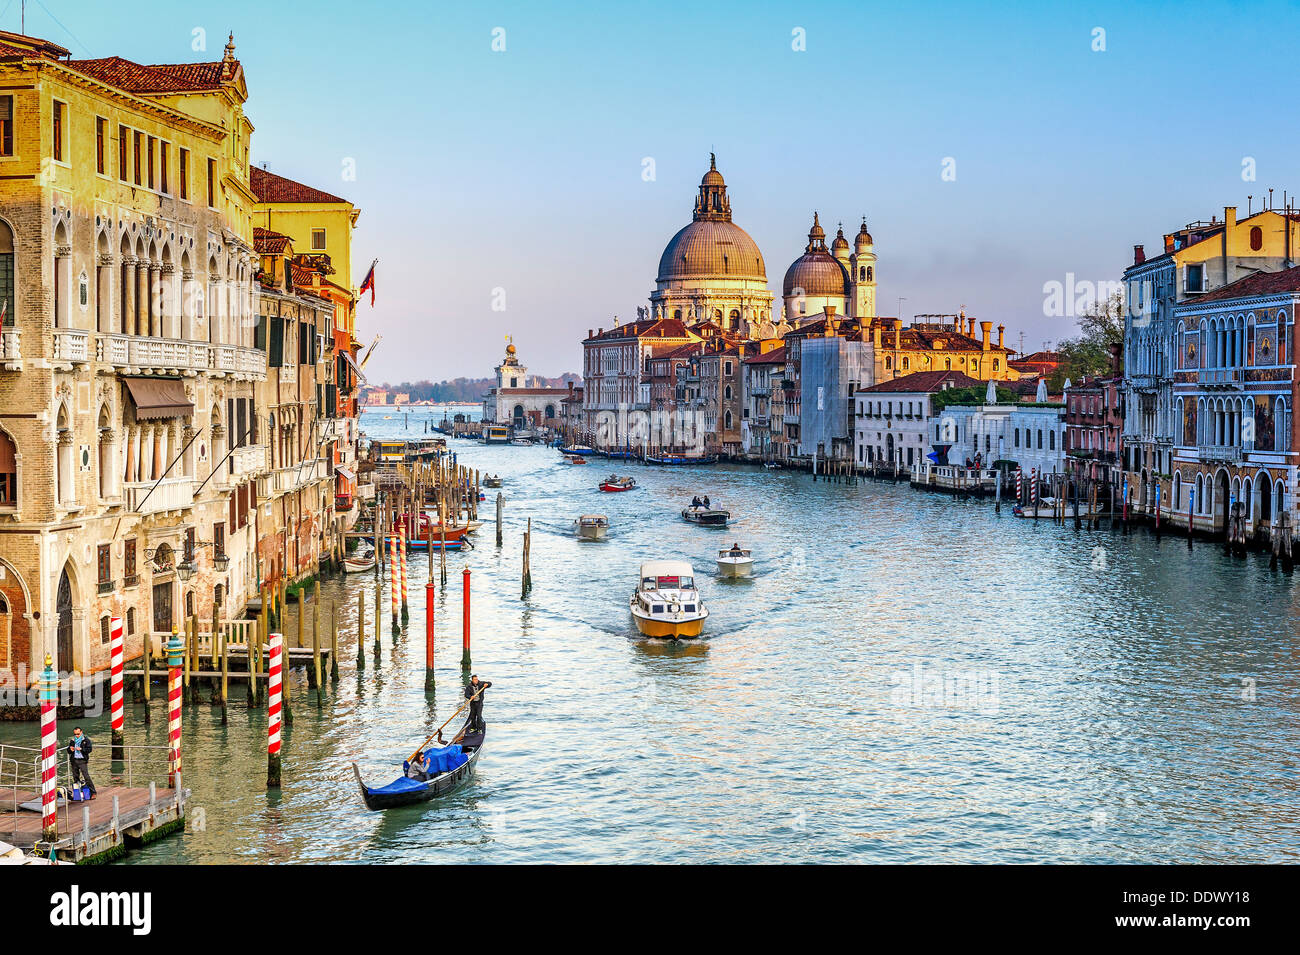 Europe, Italy, Veneto, Venice. The Grand Canal from the bridge of the Academia and Our Lady of the Salute. - Stock Image